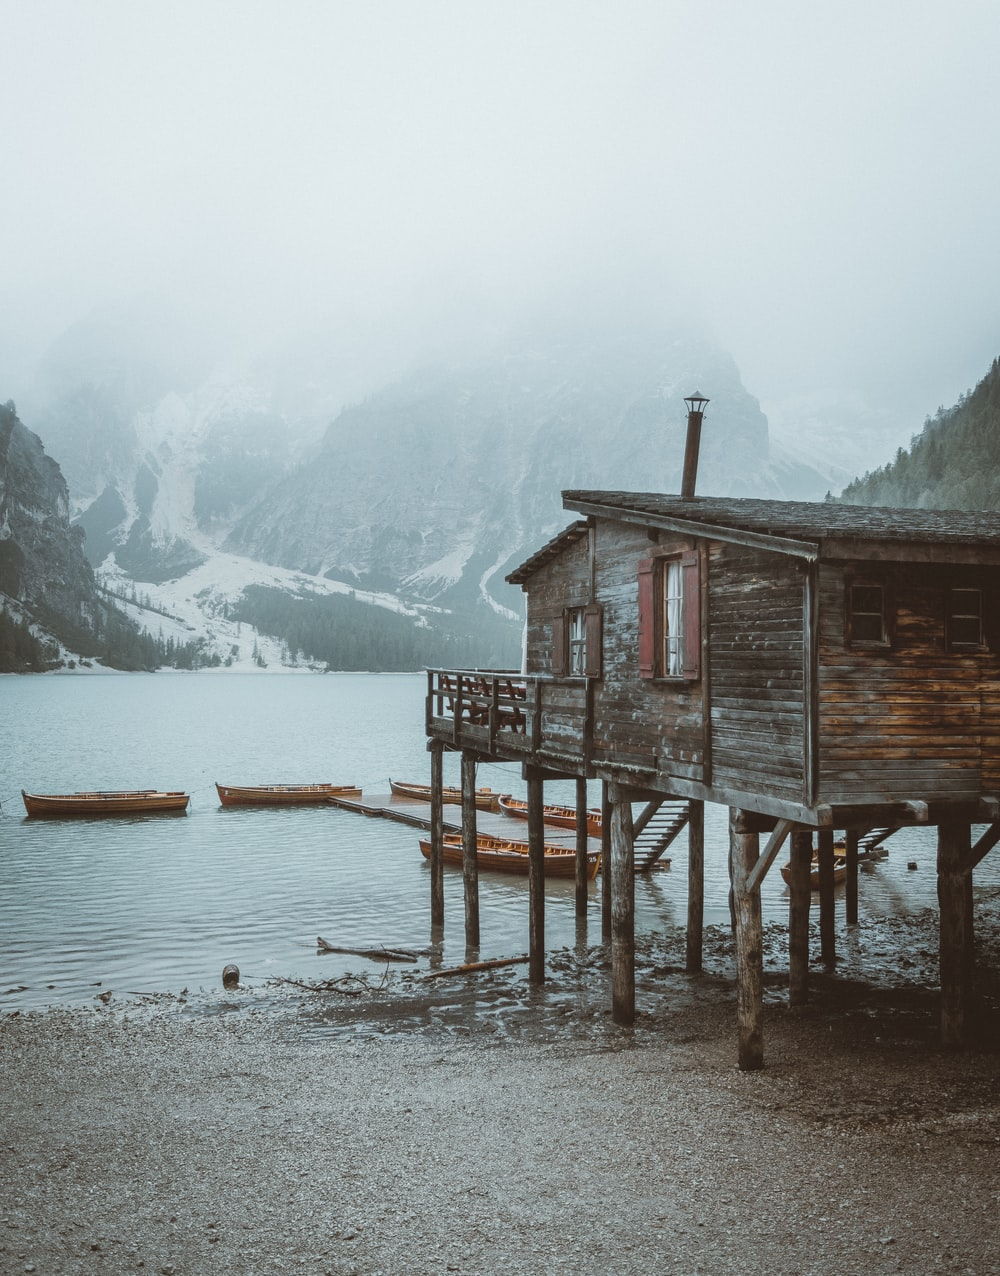 brown wooden house on body of water near snow covered mountain during daytime